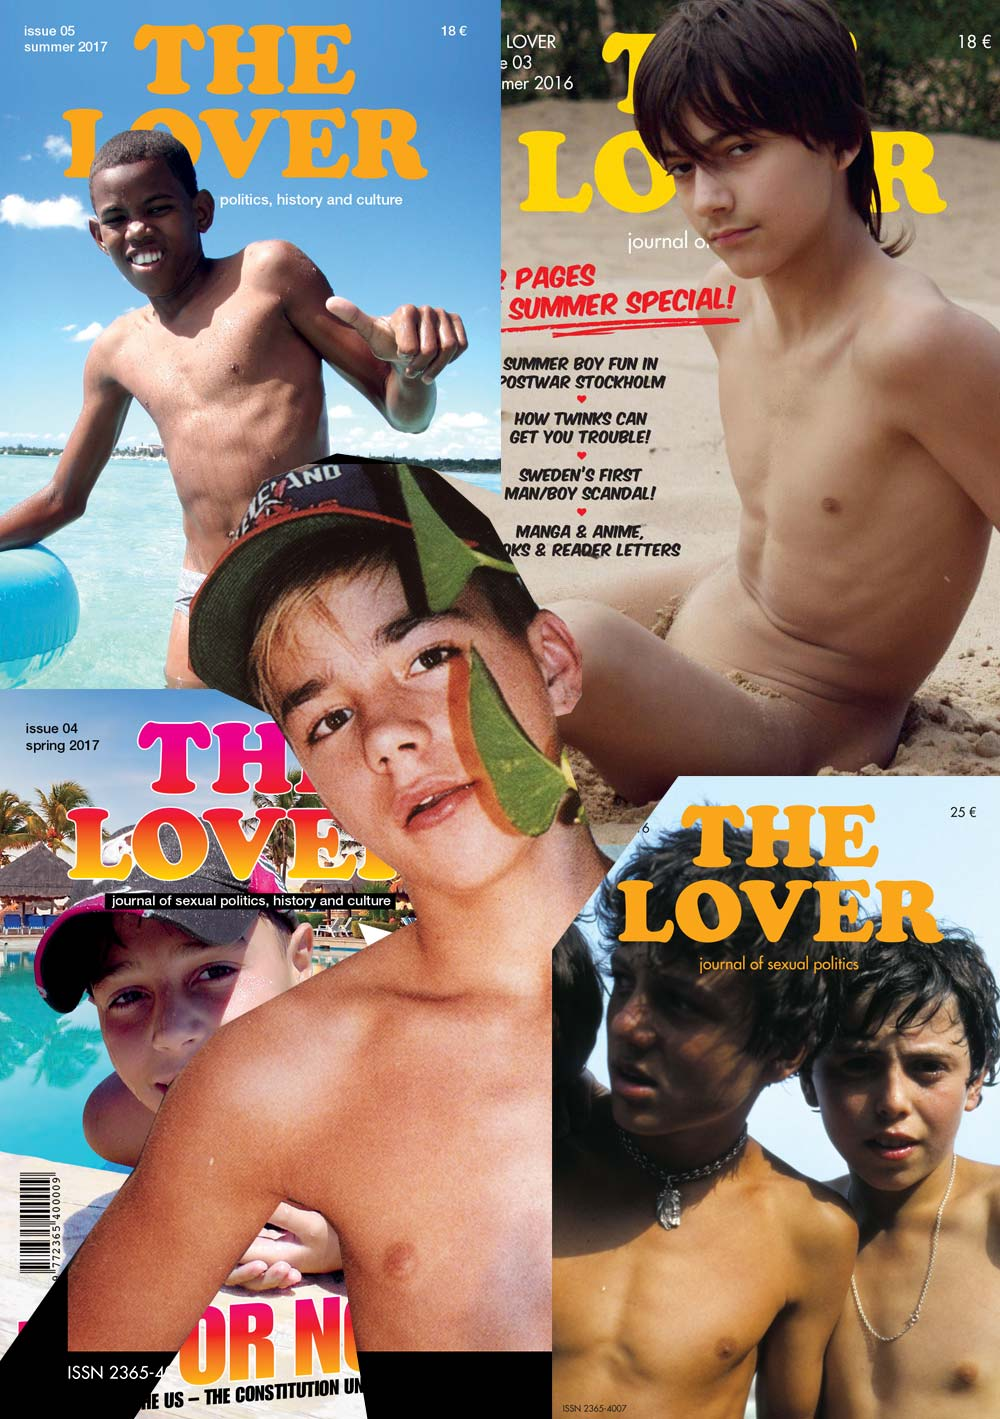 The Lover Magazine PDF download bundle